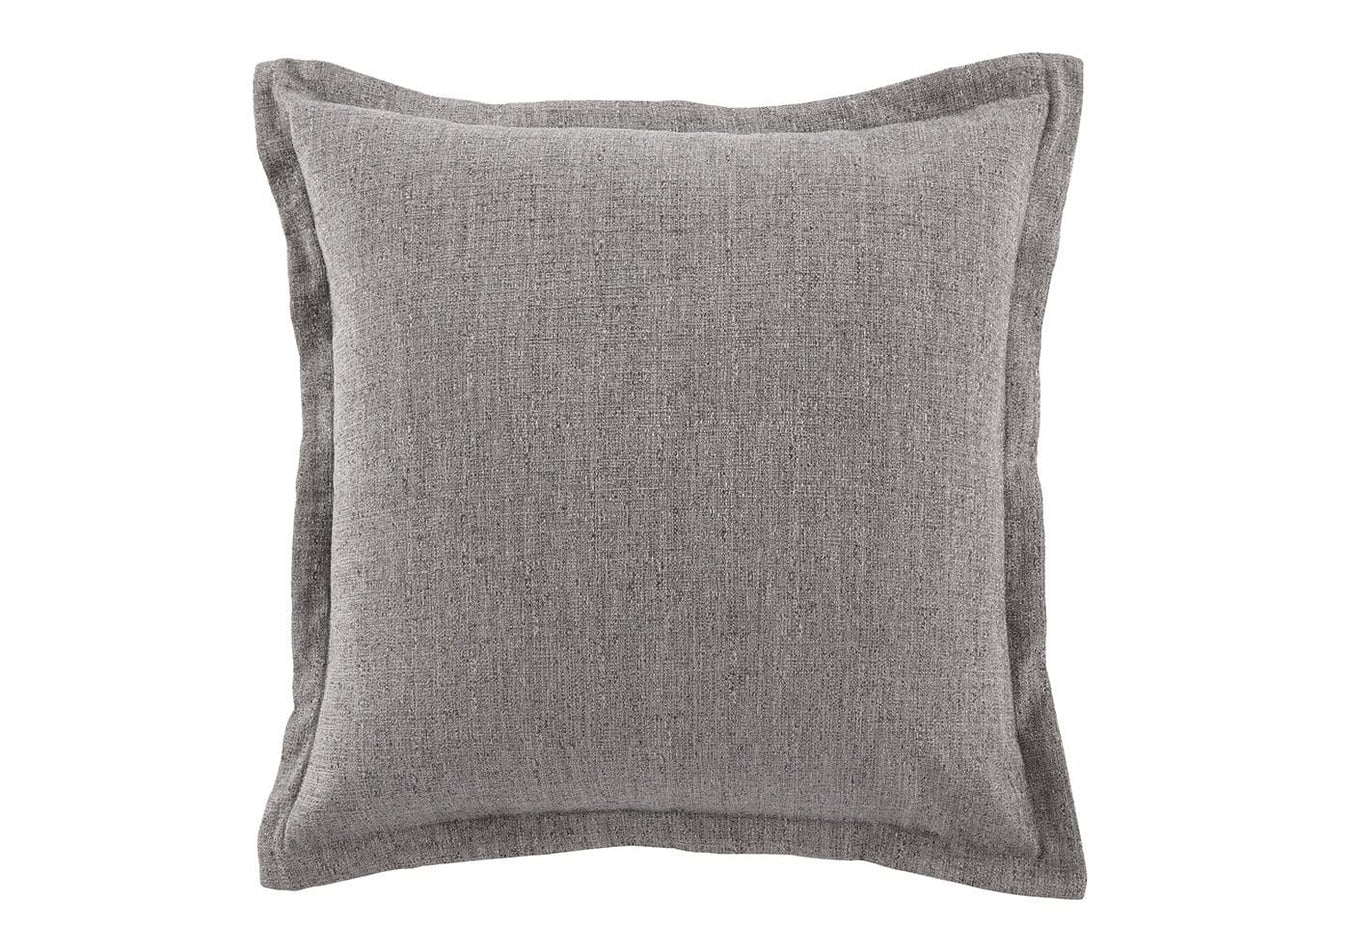 Textured Tweed 20 Inch Square Pillow Slip